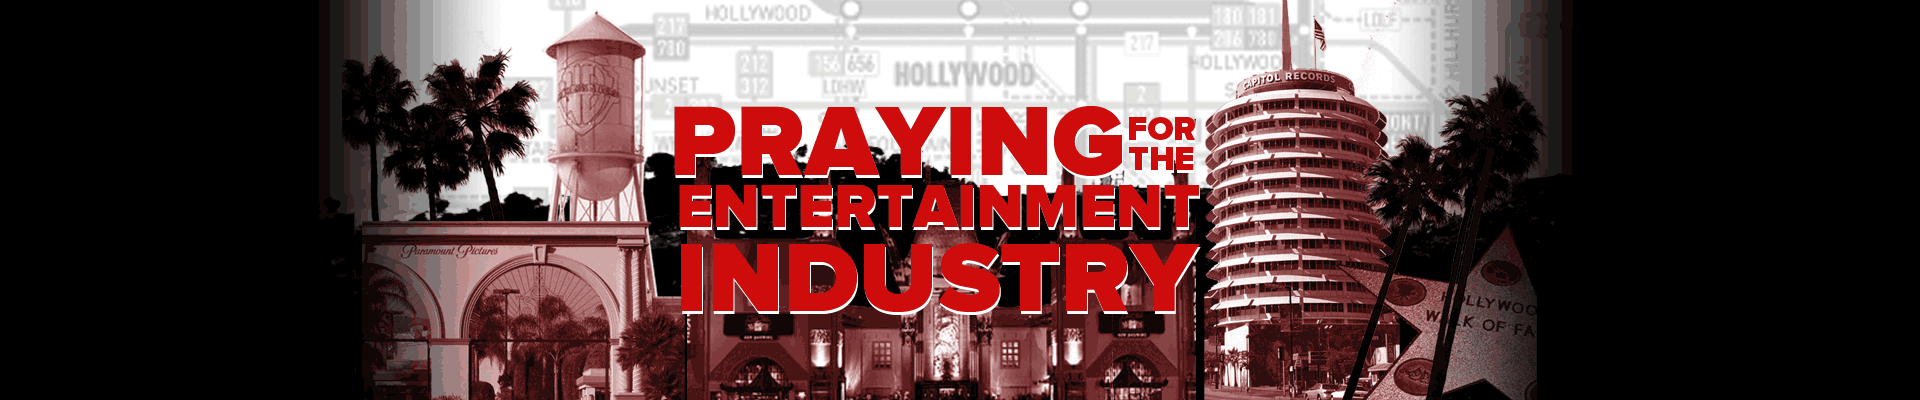 Praying for the Entertainment Industry